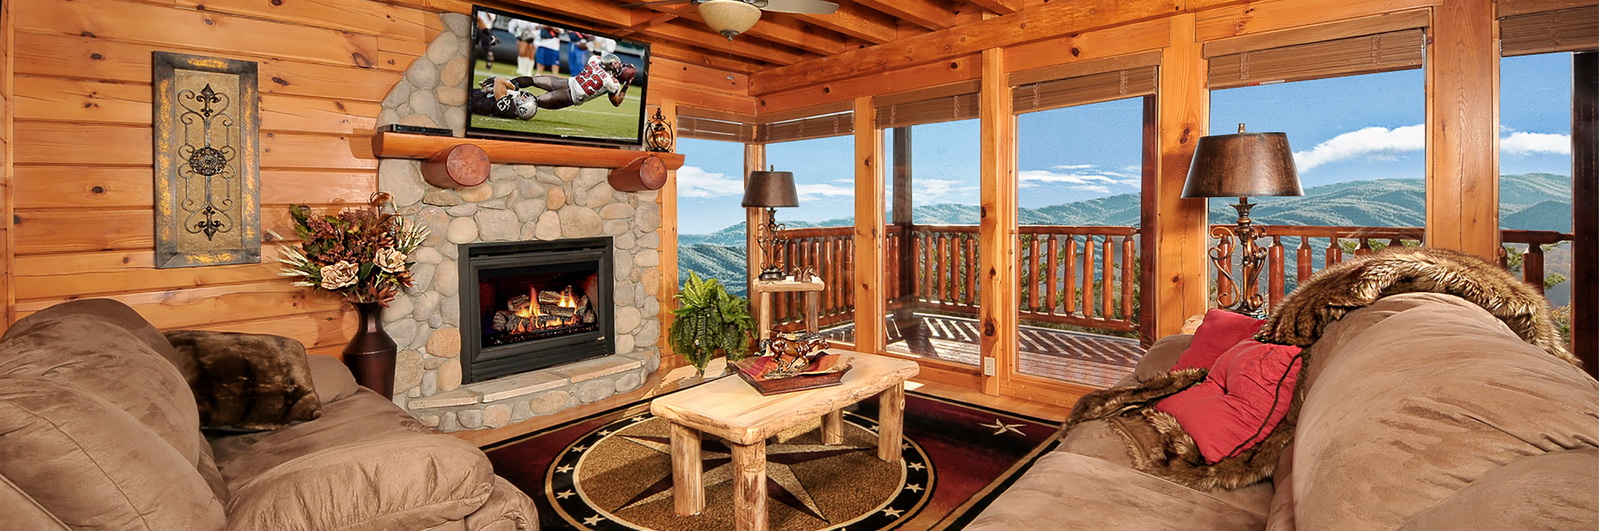 cabins utah s cabin home a rentals southern htm best vacation buy utahs in